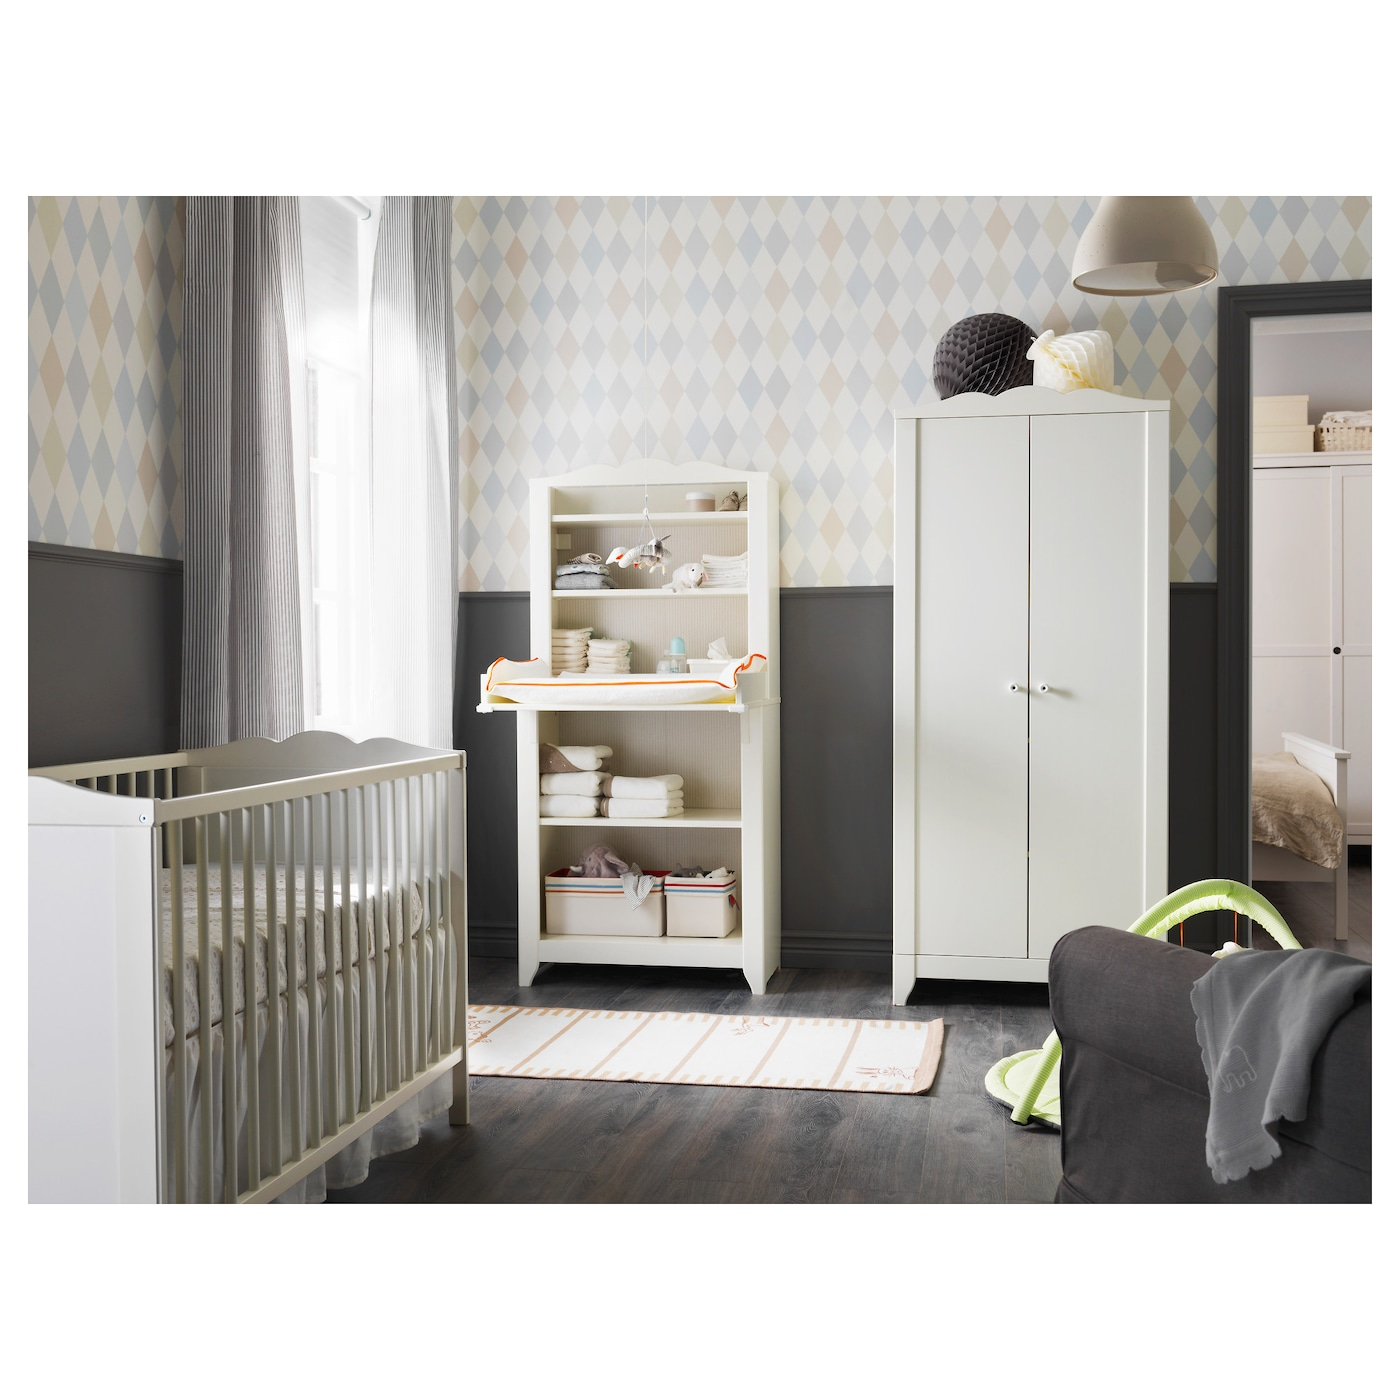 hensvik cot white 60x120 cm ikea. Black Bedroom Furniture Sets. Home Design Ideas